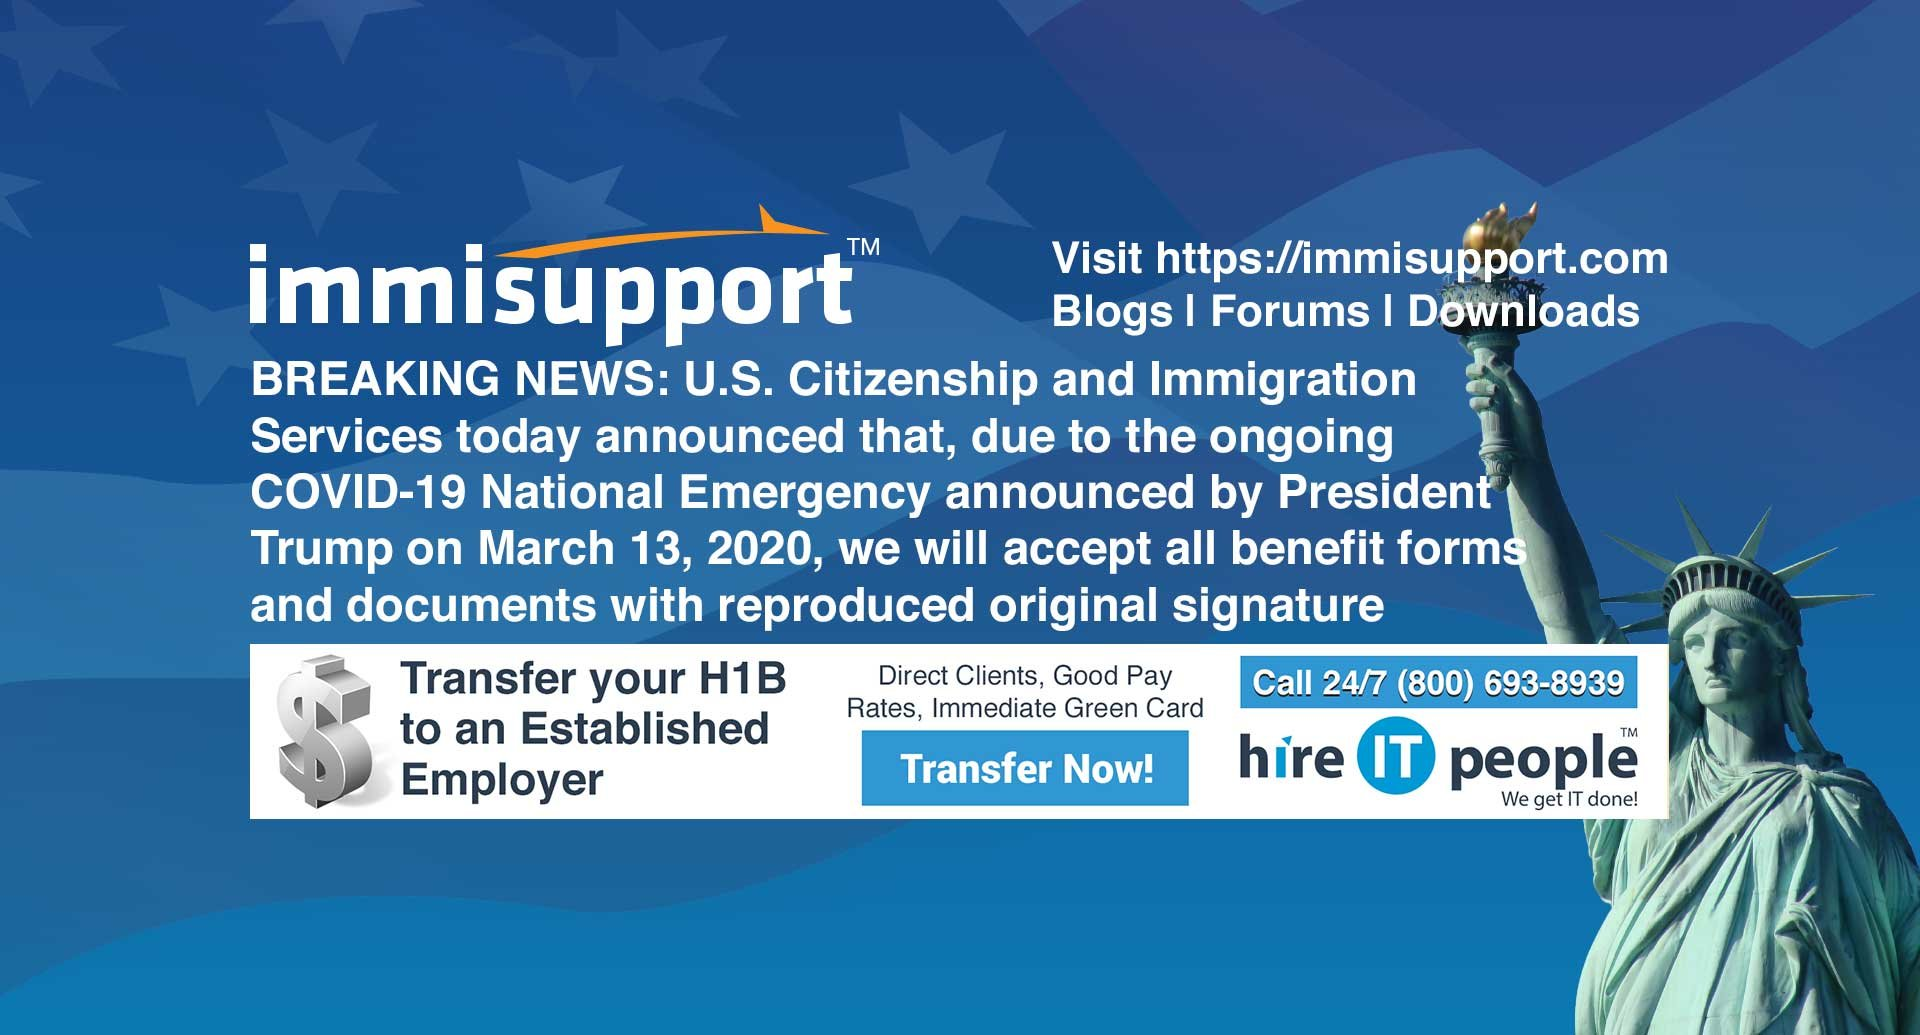 BREAKING NEWS: U.S. Citizenship and Immigration Services today announced that, due to the ongoing COVID-19 National Emergency announced by President Trump on March 13, 2020, we will accept all benefit forms and documents with reproduced original signature